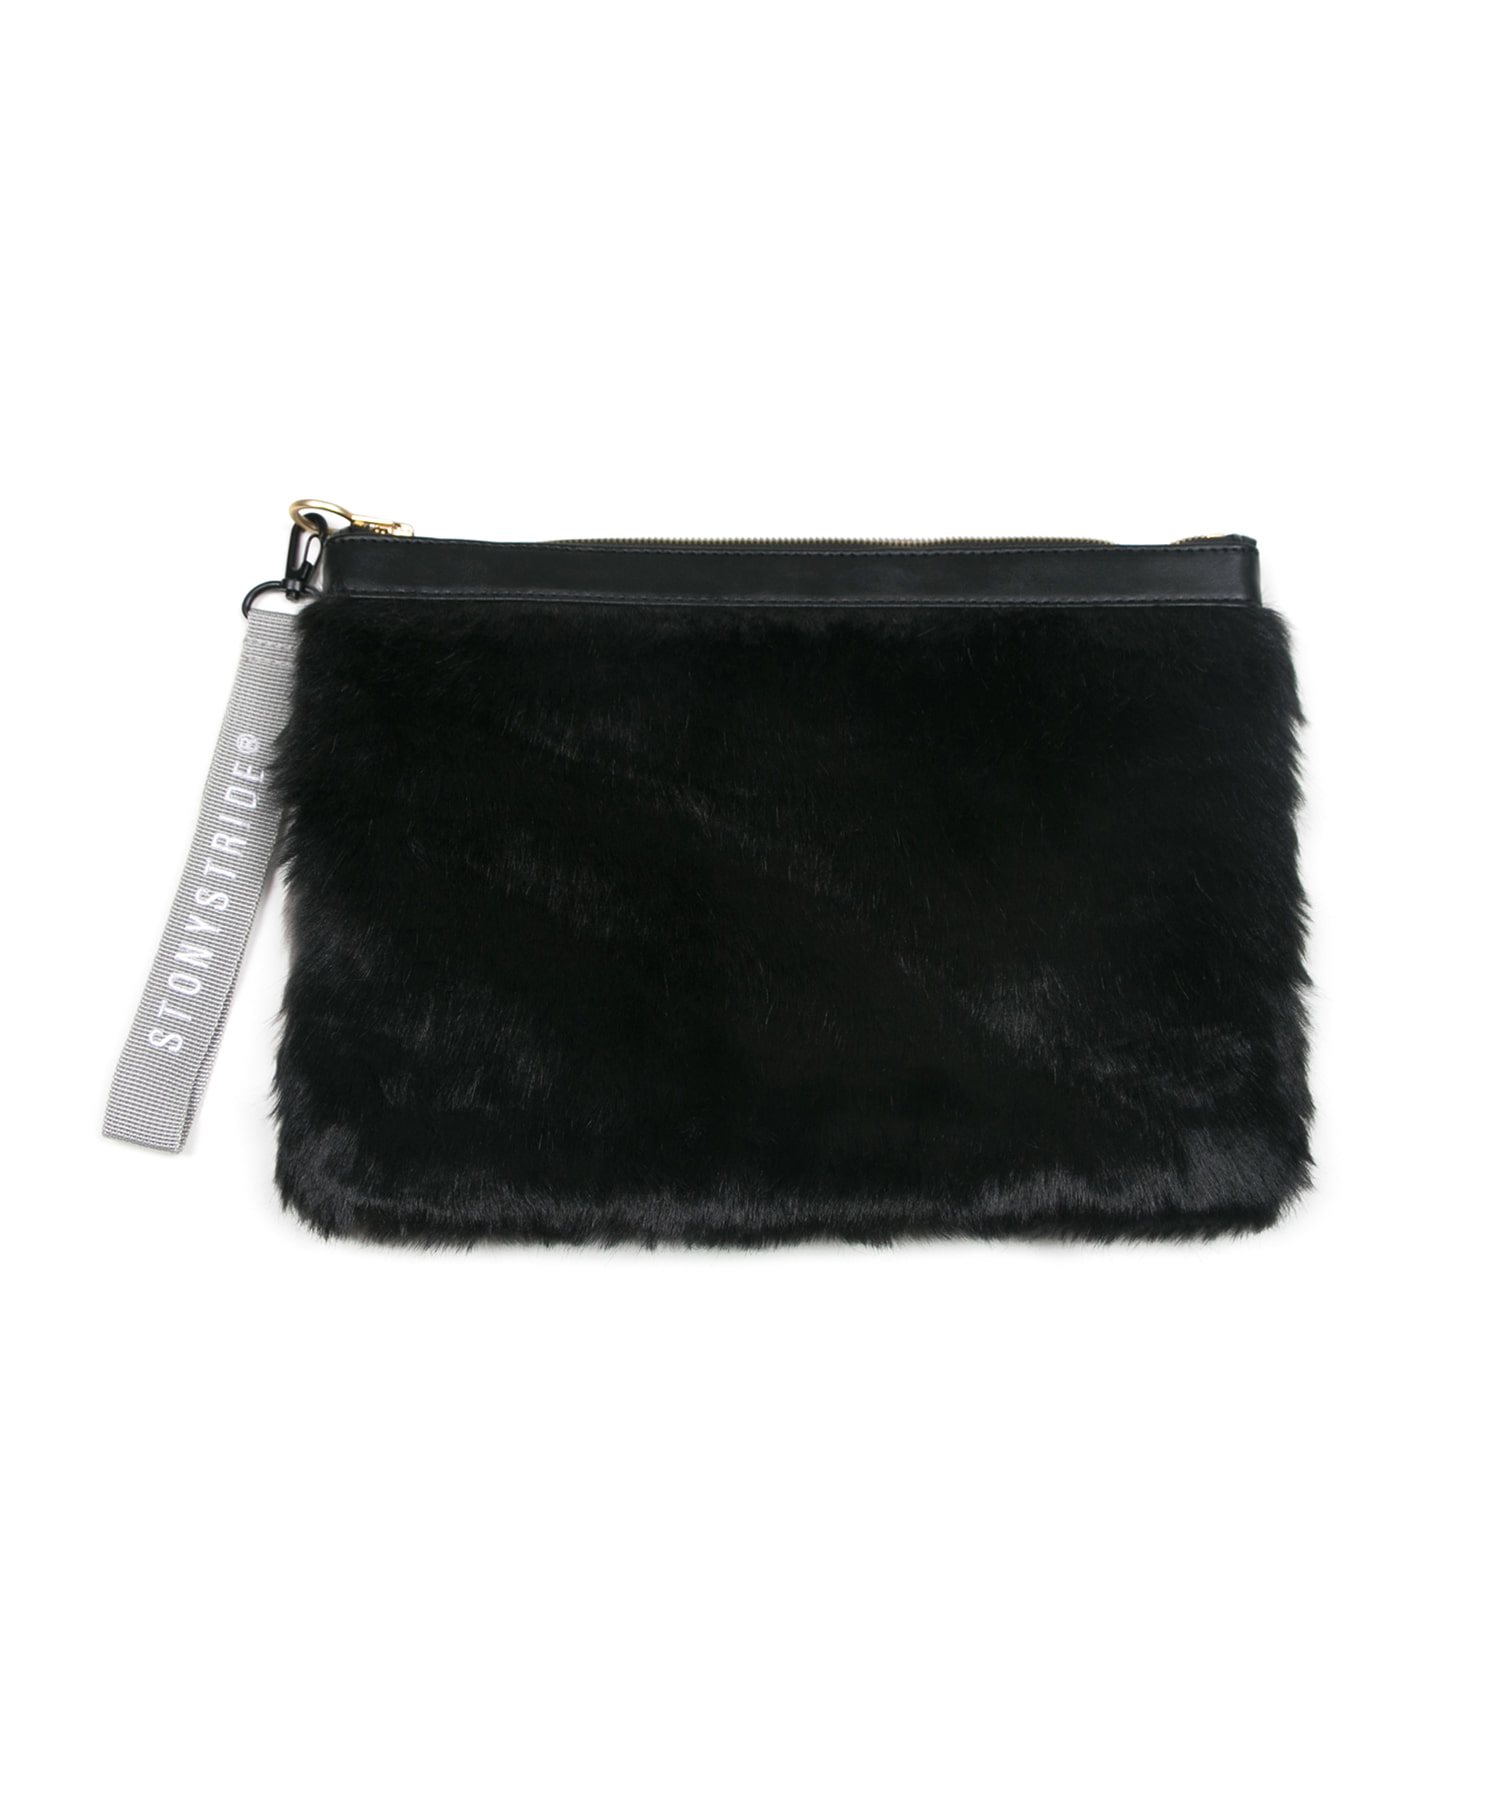 Colourful two-tone fur clutchbag - black/gray